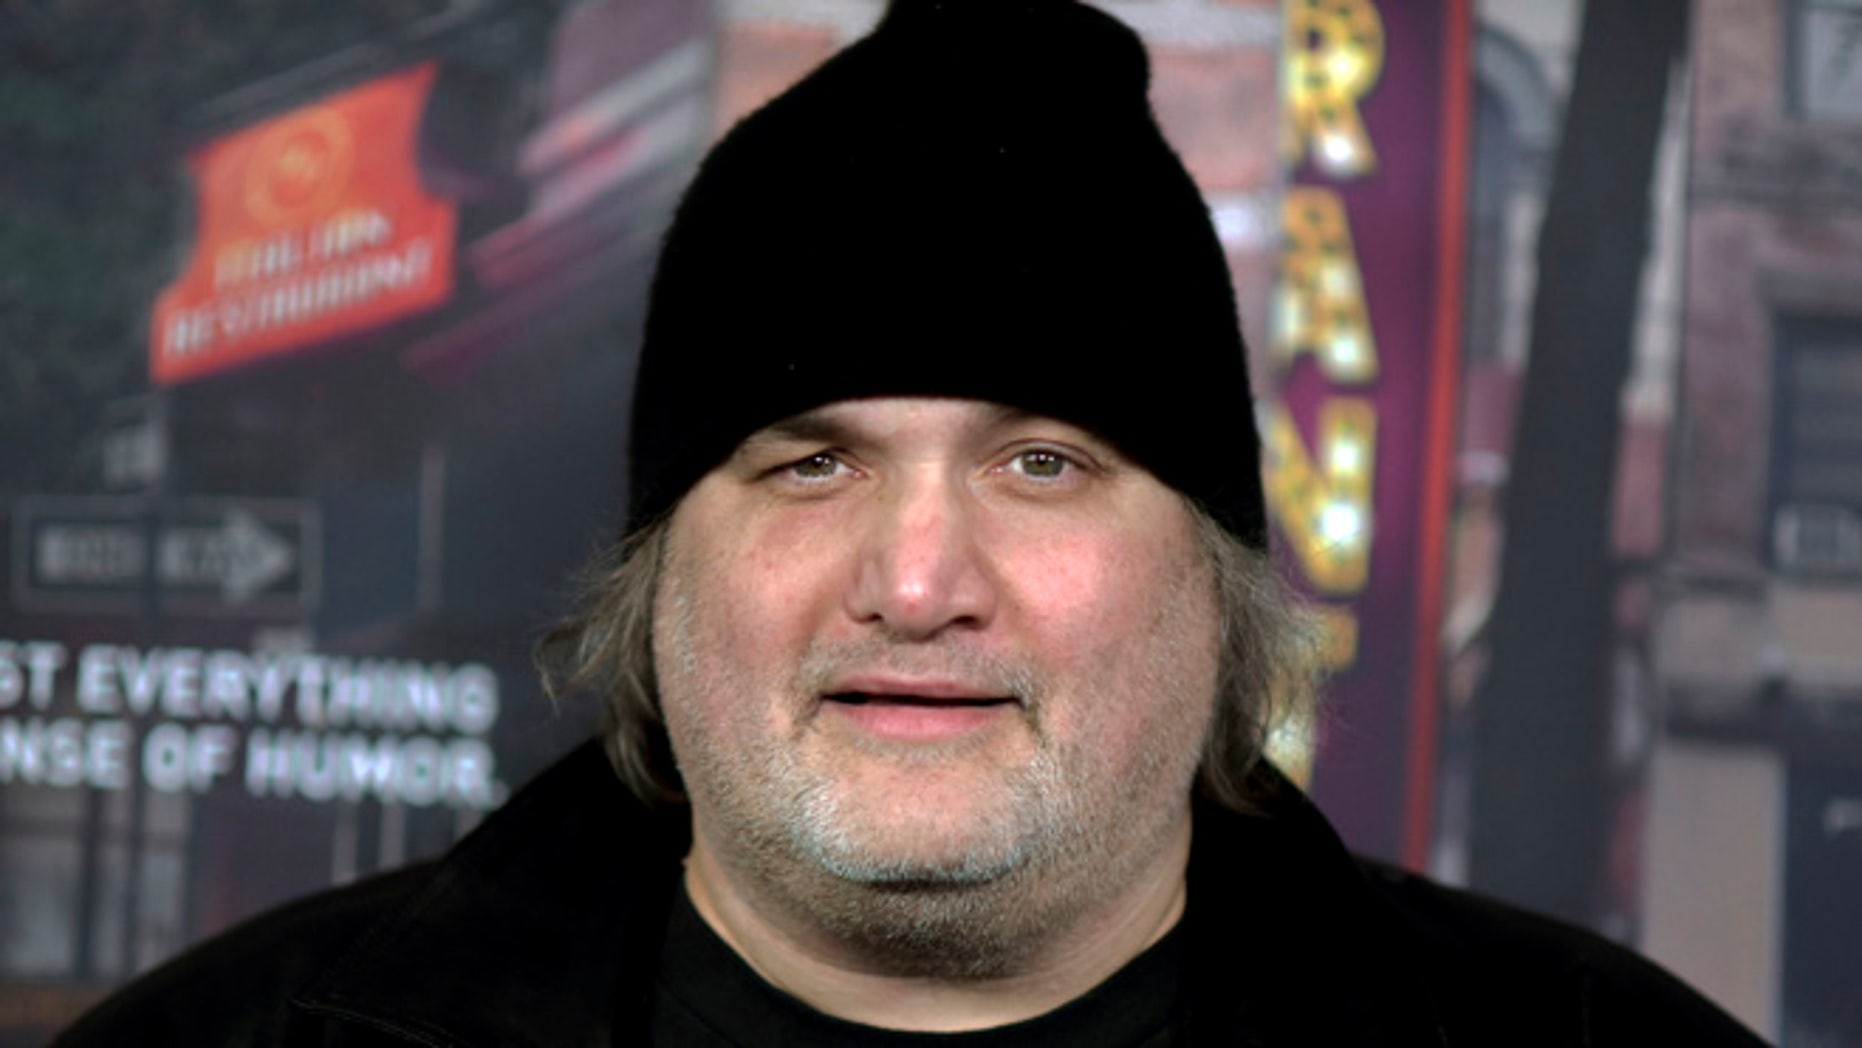 Authorities said Artie Lange failed to appear in Essex County Superior Court for charges stemming from a drug arrest earlier this year.